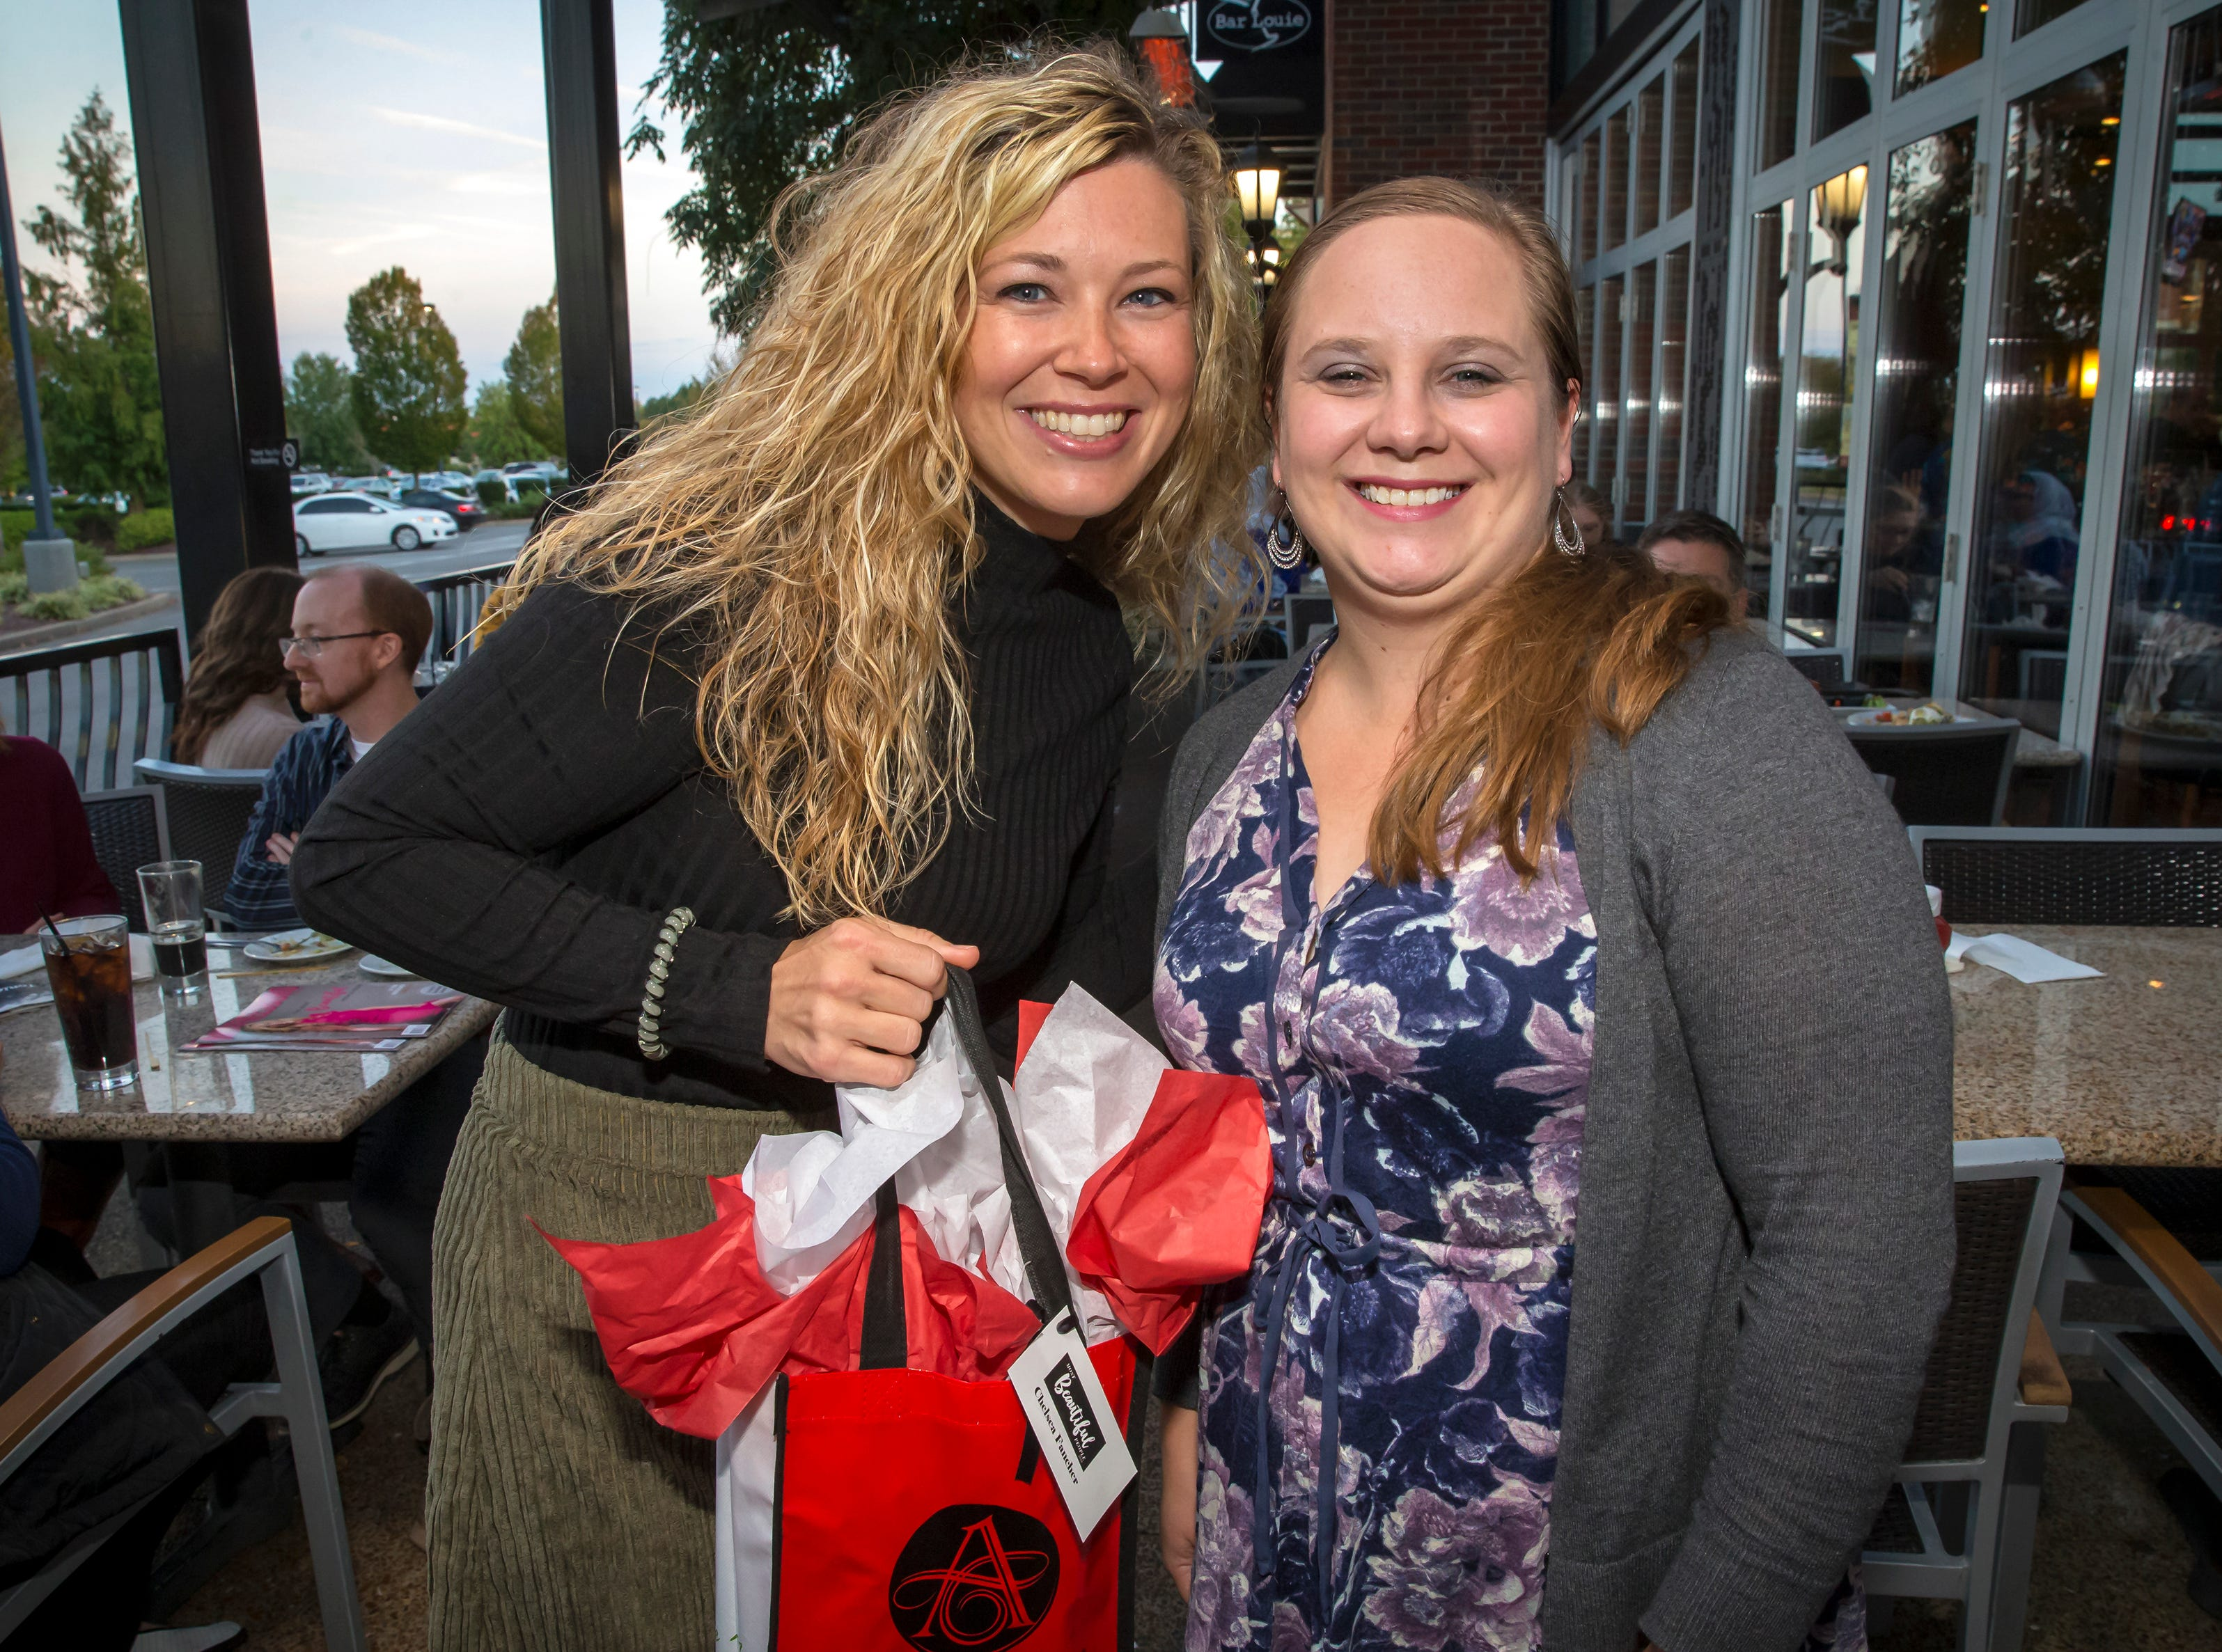 Chelsea Fancher and Sarah Clark at the Murfreesboro Magazine Most Beautiful People event held at Bar Louie.